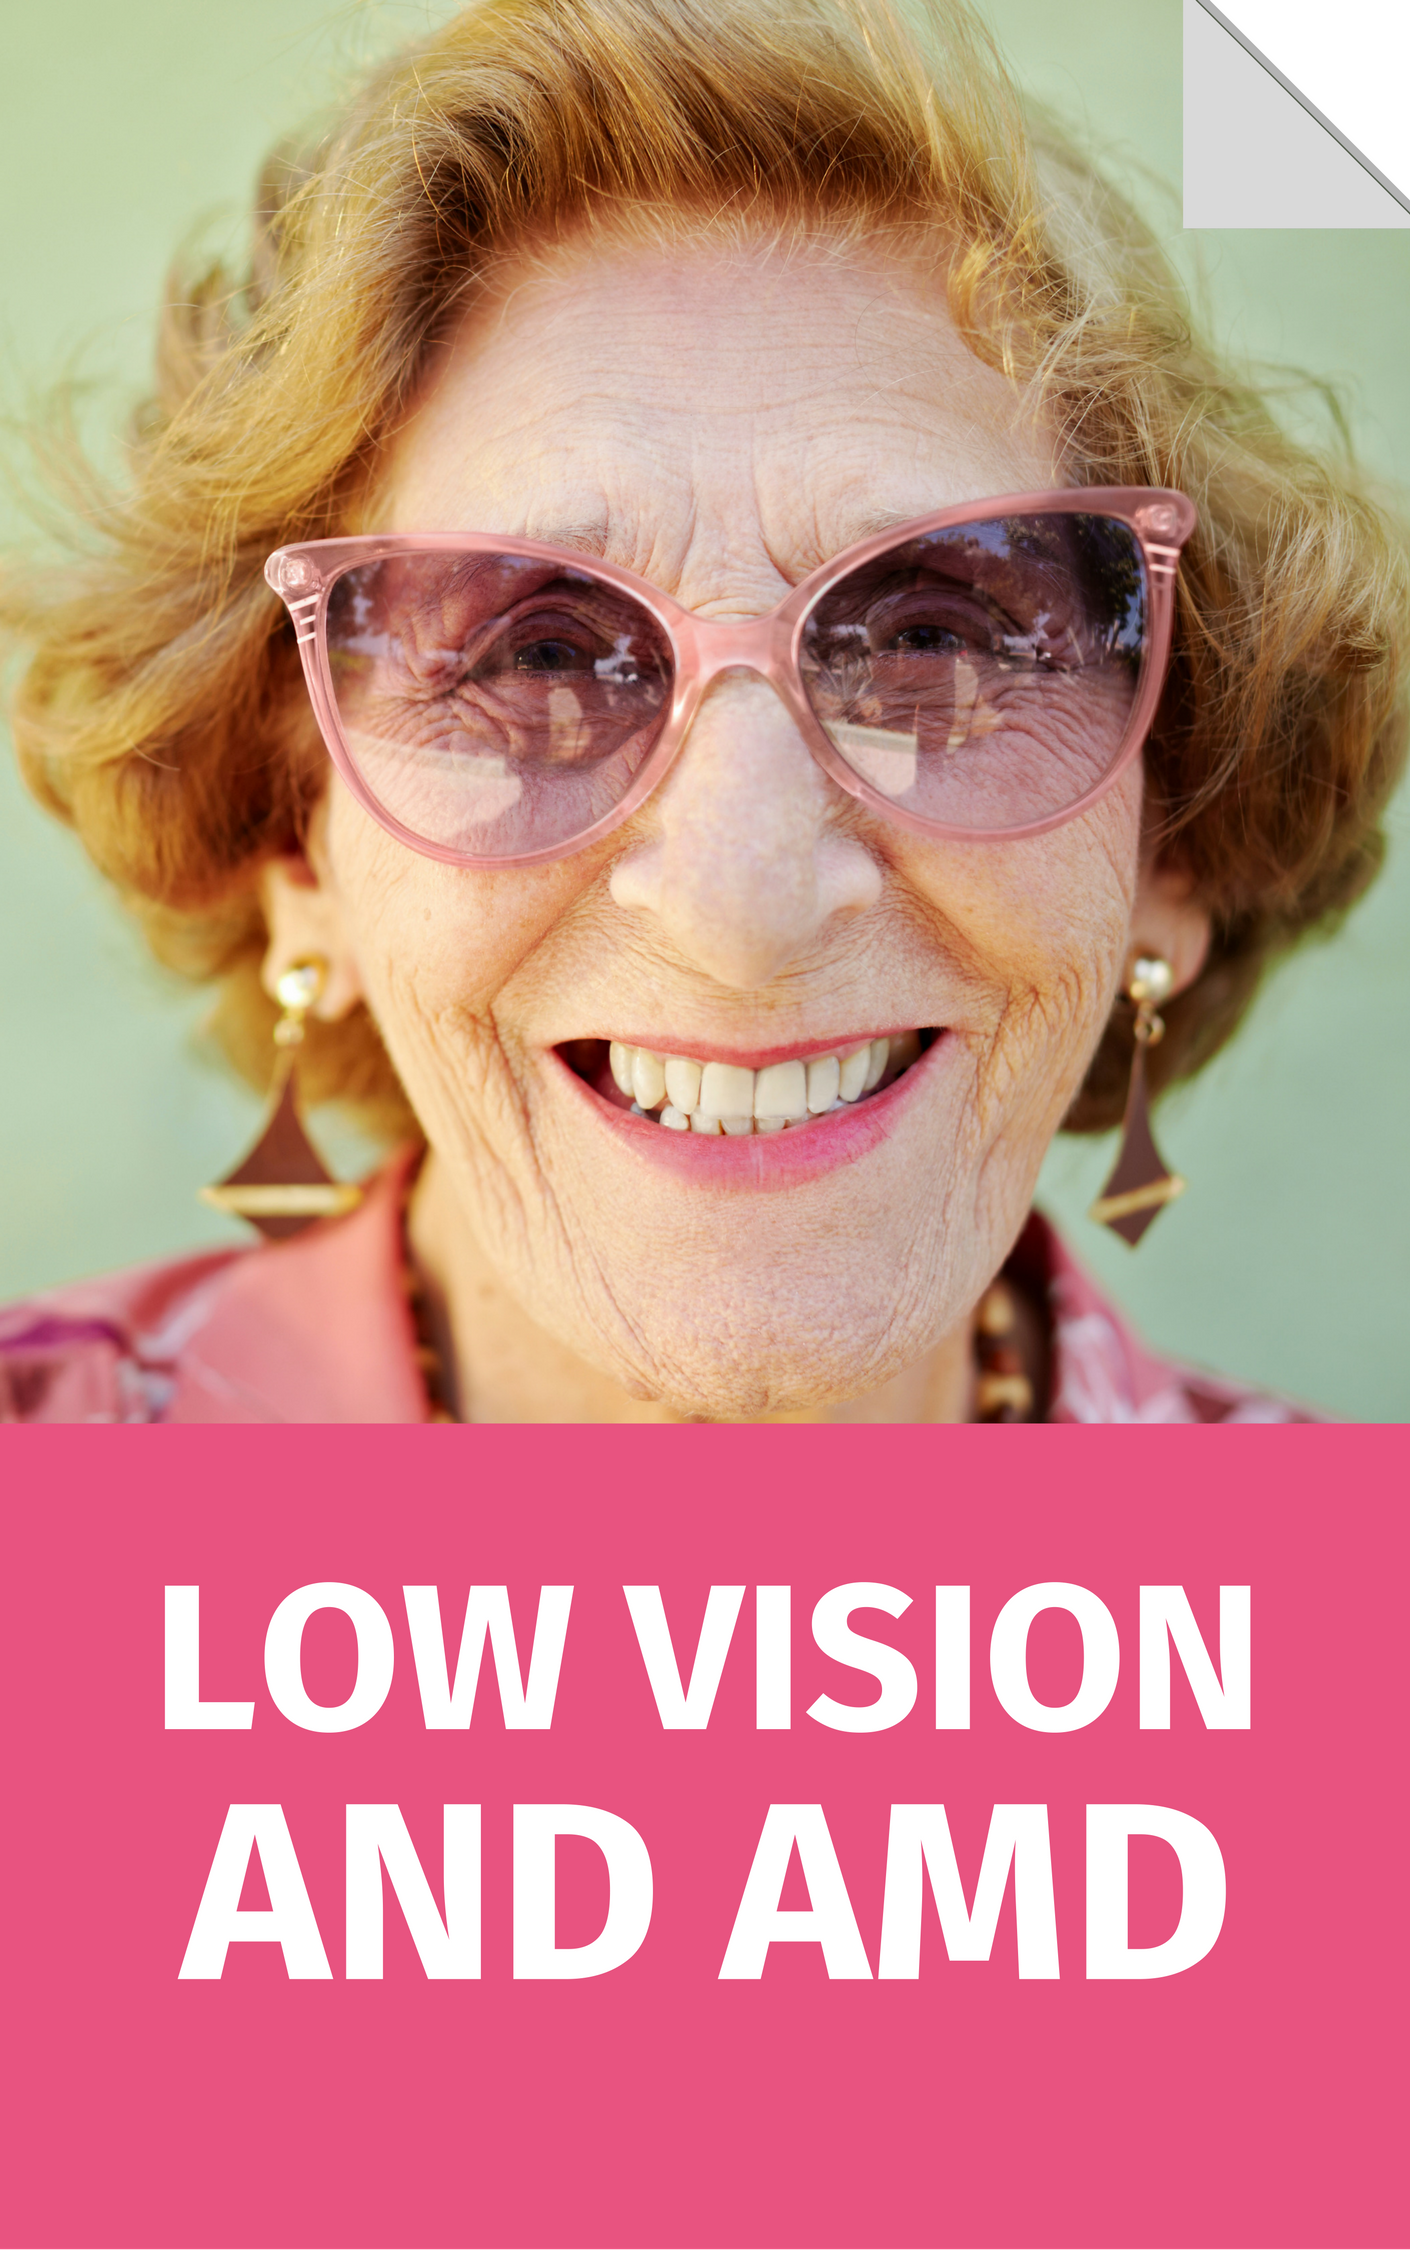 Low Vision and AMD